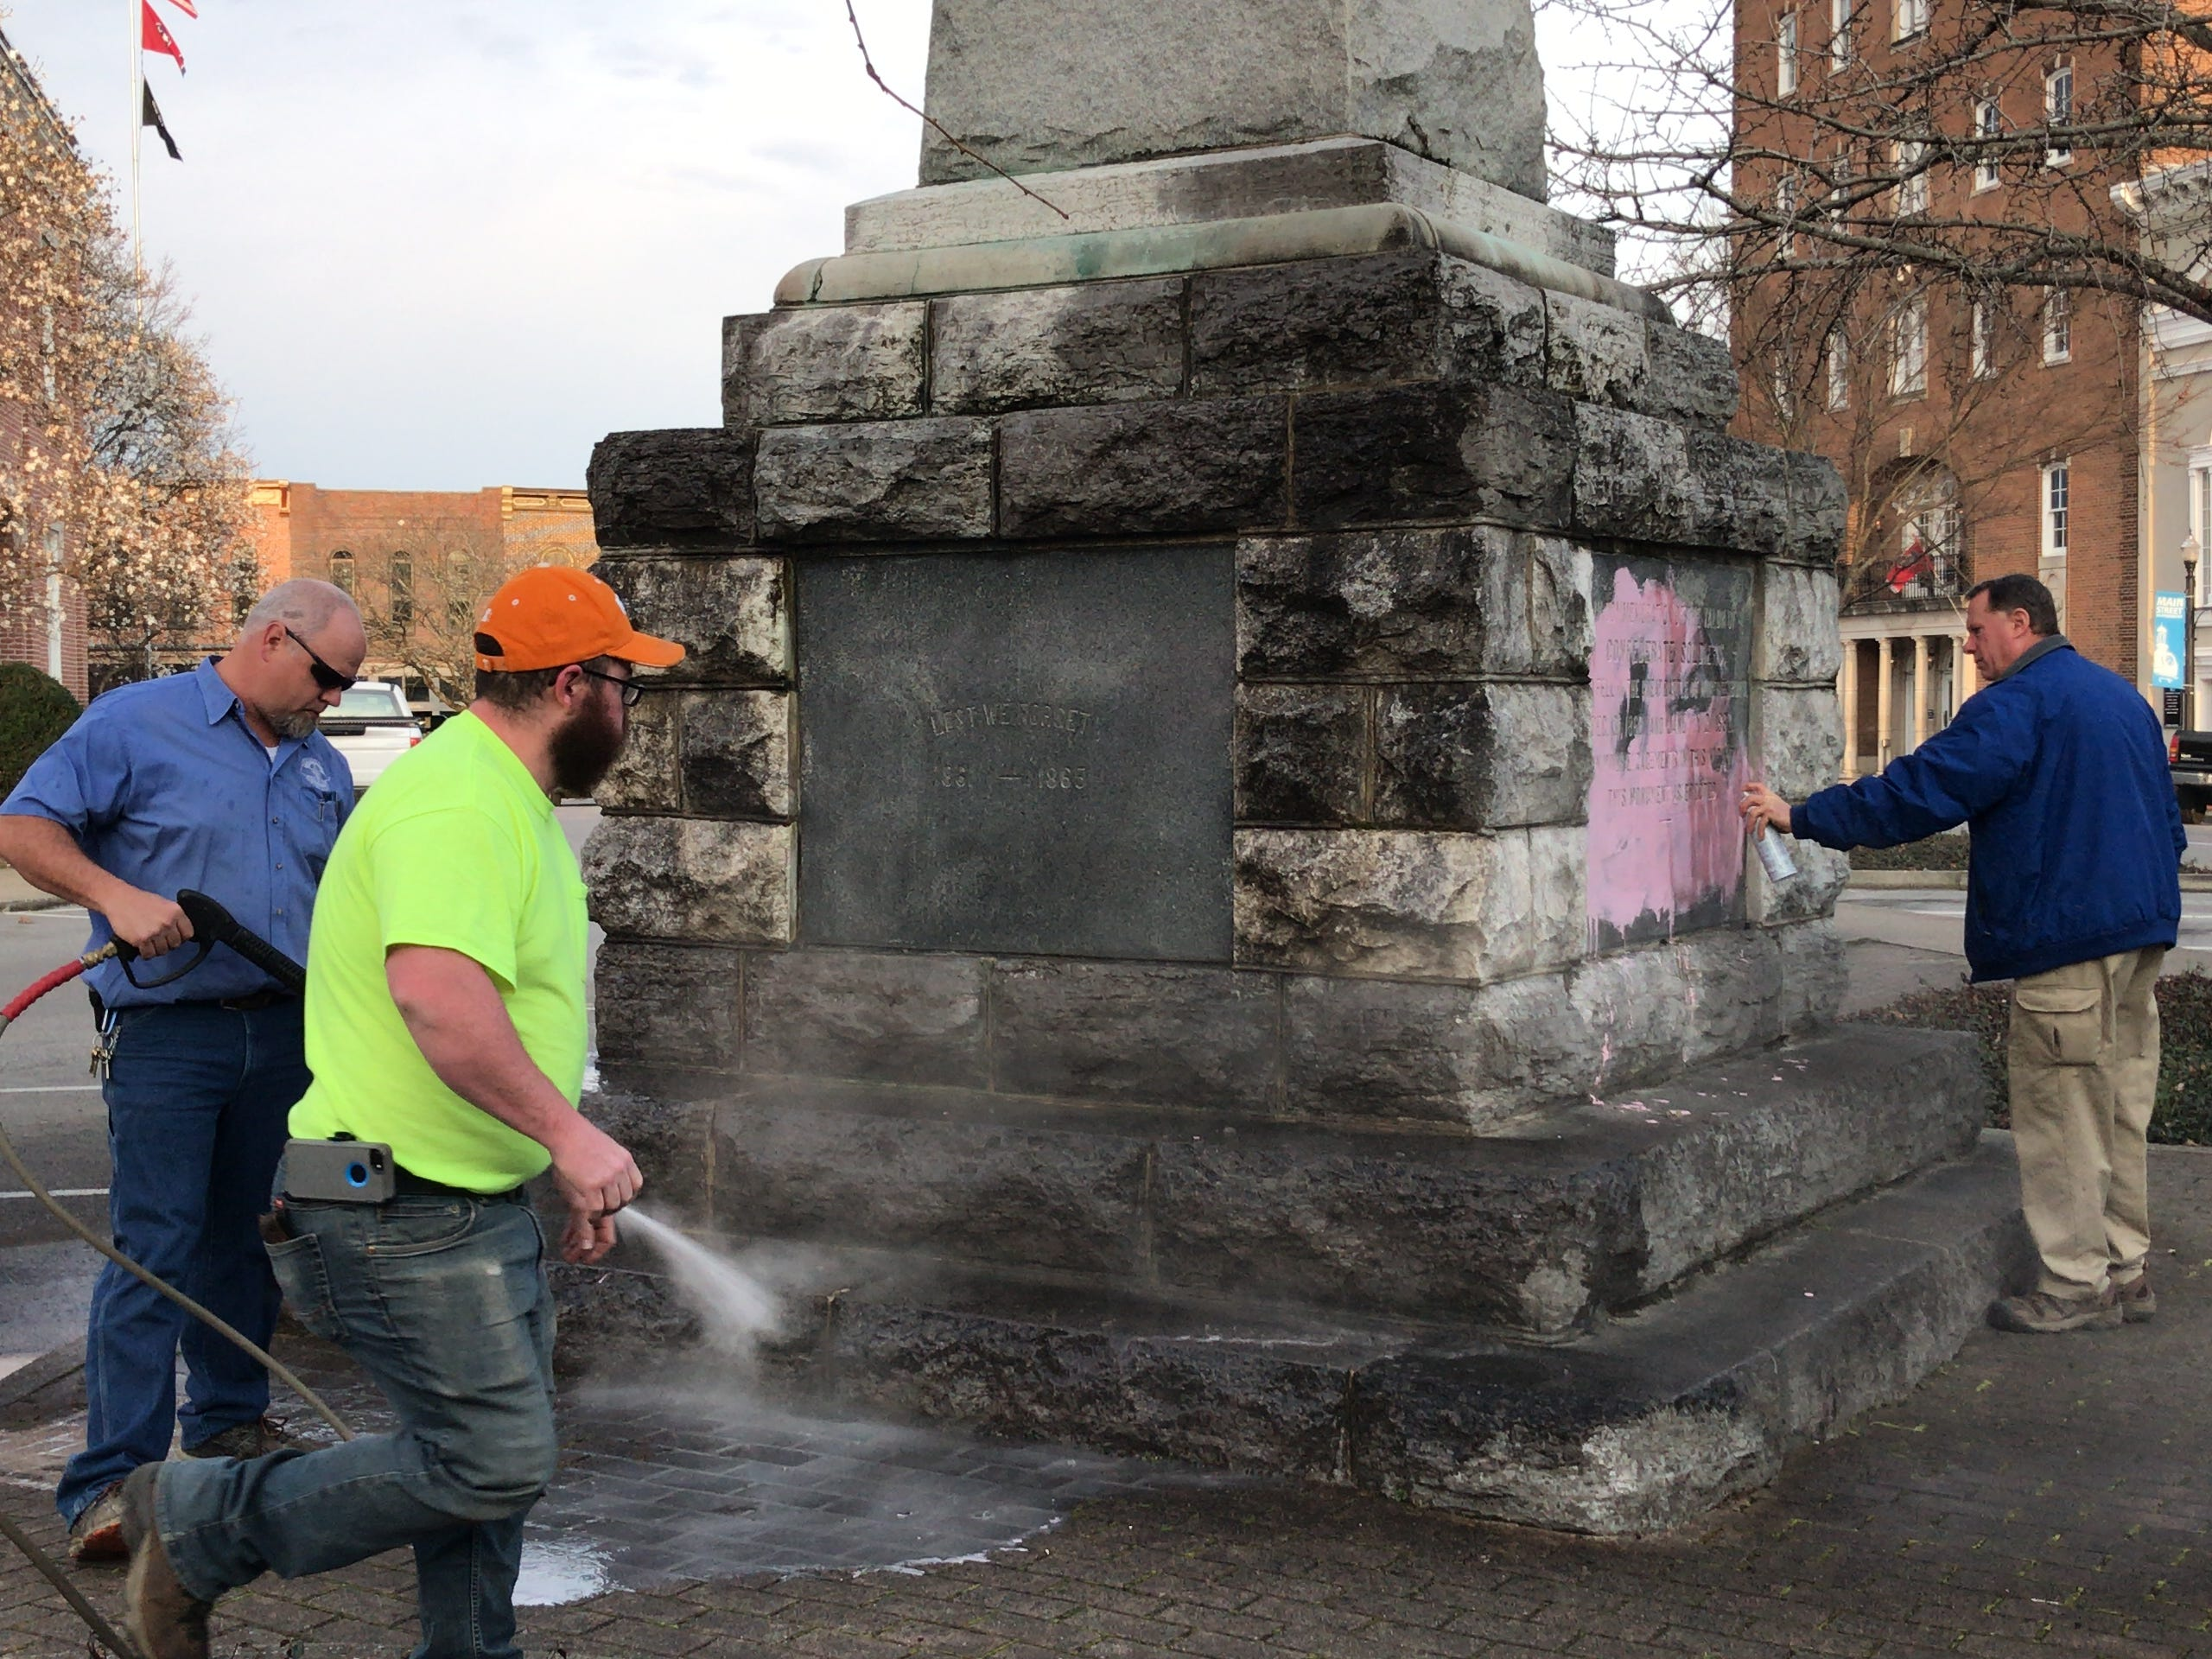 Rutherford County government workers pressure wash a Confederate statue on the Murfreesboro Public Square early Wednesday, March 13, 2019. The statue was vandalized with pint paint.